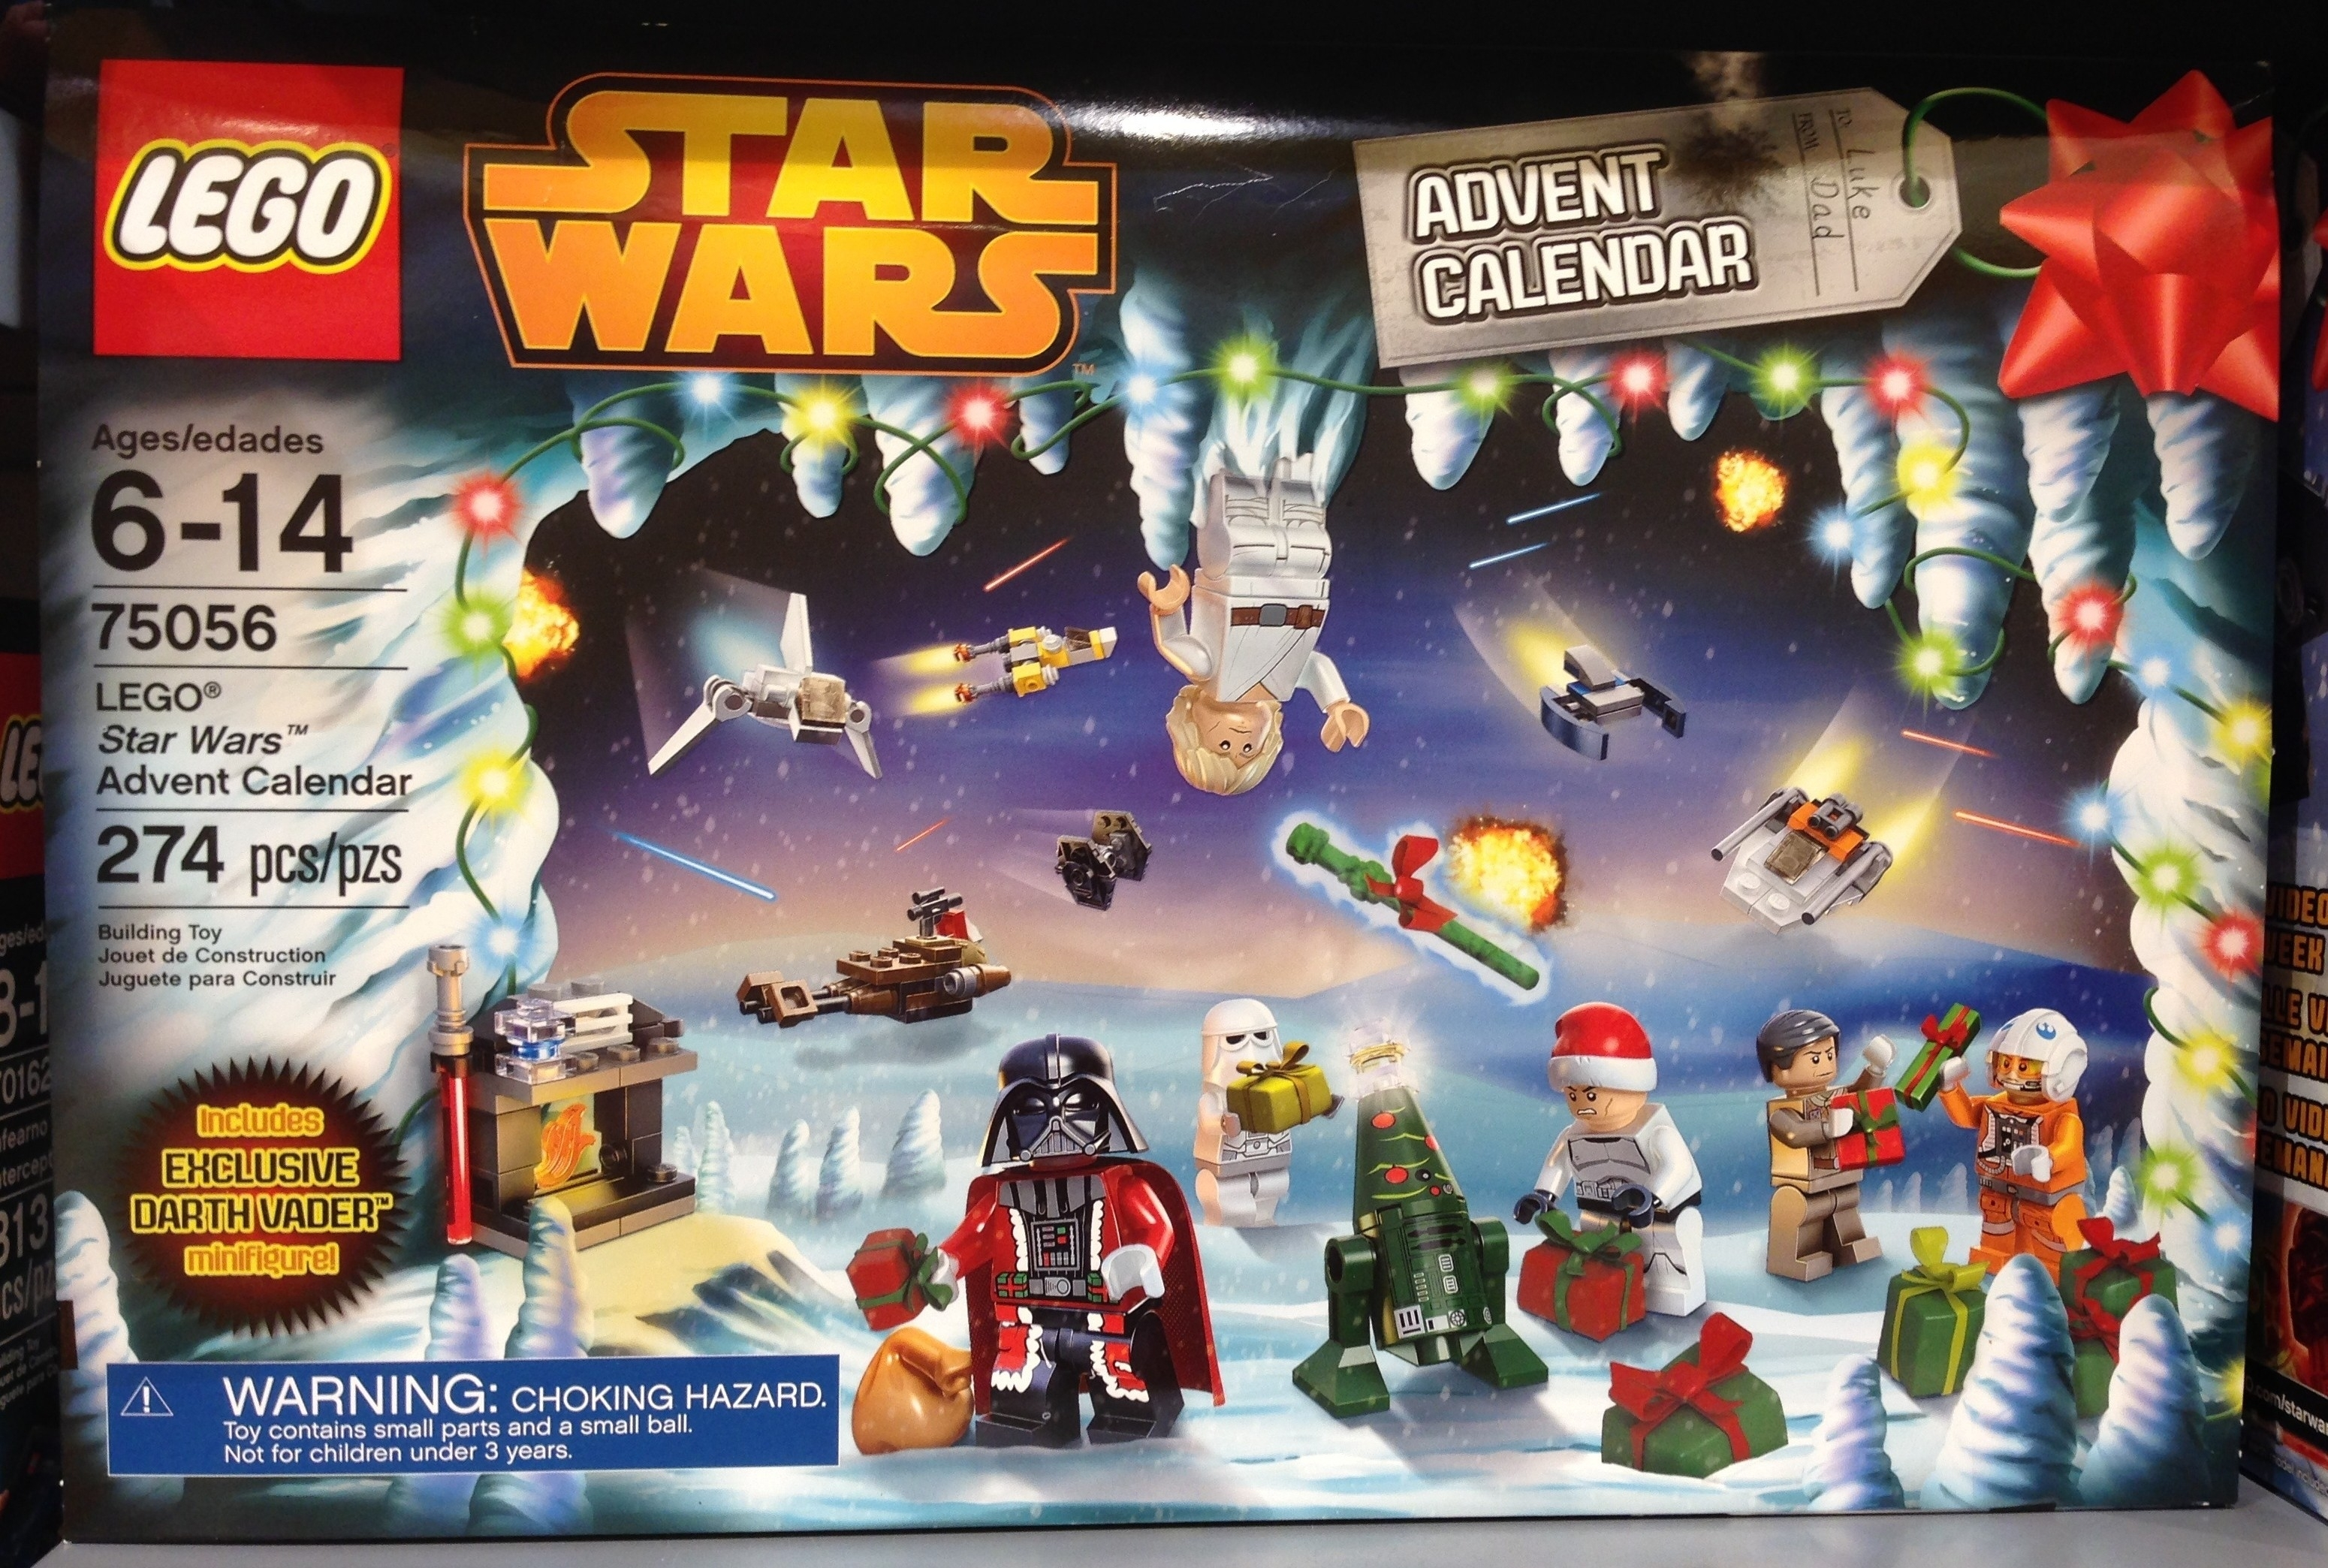 Lego Star Wars 2014 Advent Calendar Released In Stores! - Bricks And intended for The Lego Star Wars Chirstimas Set Code